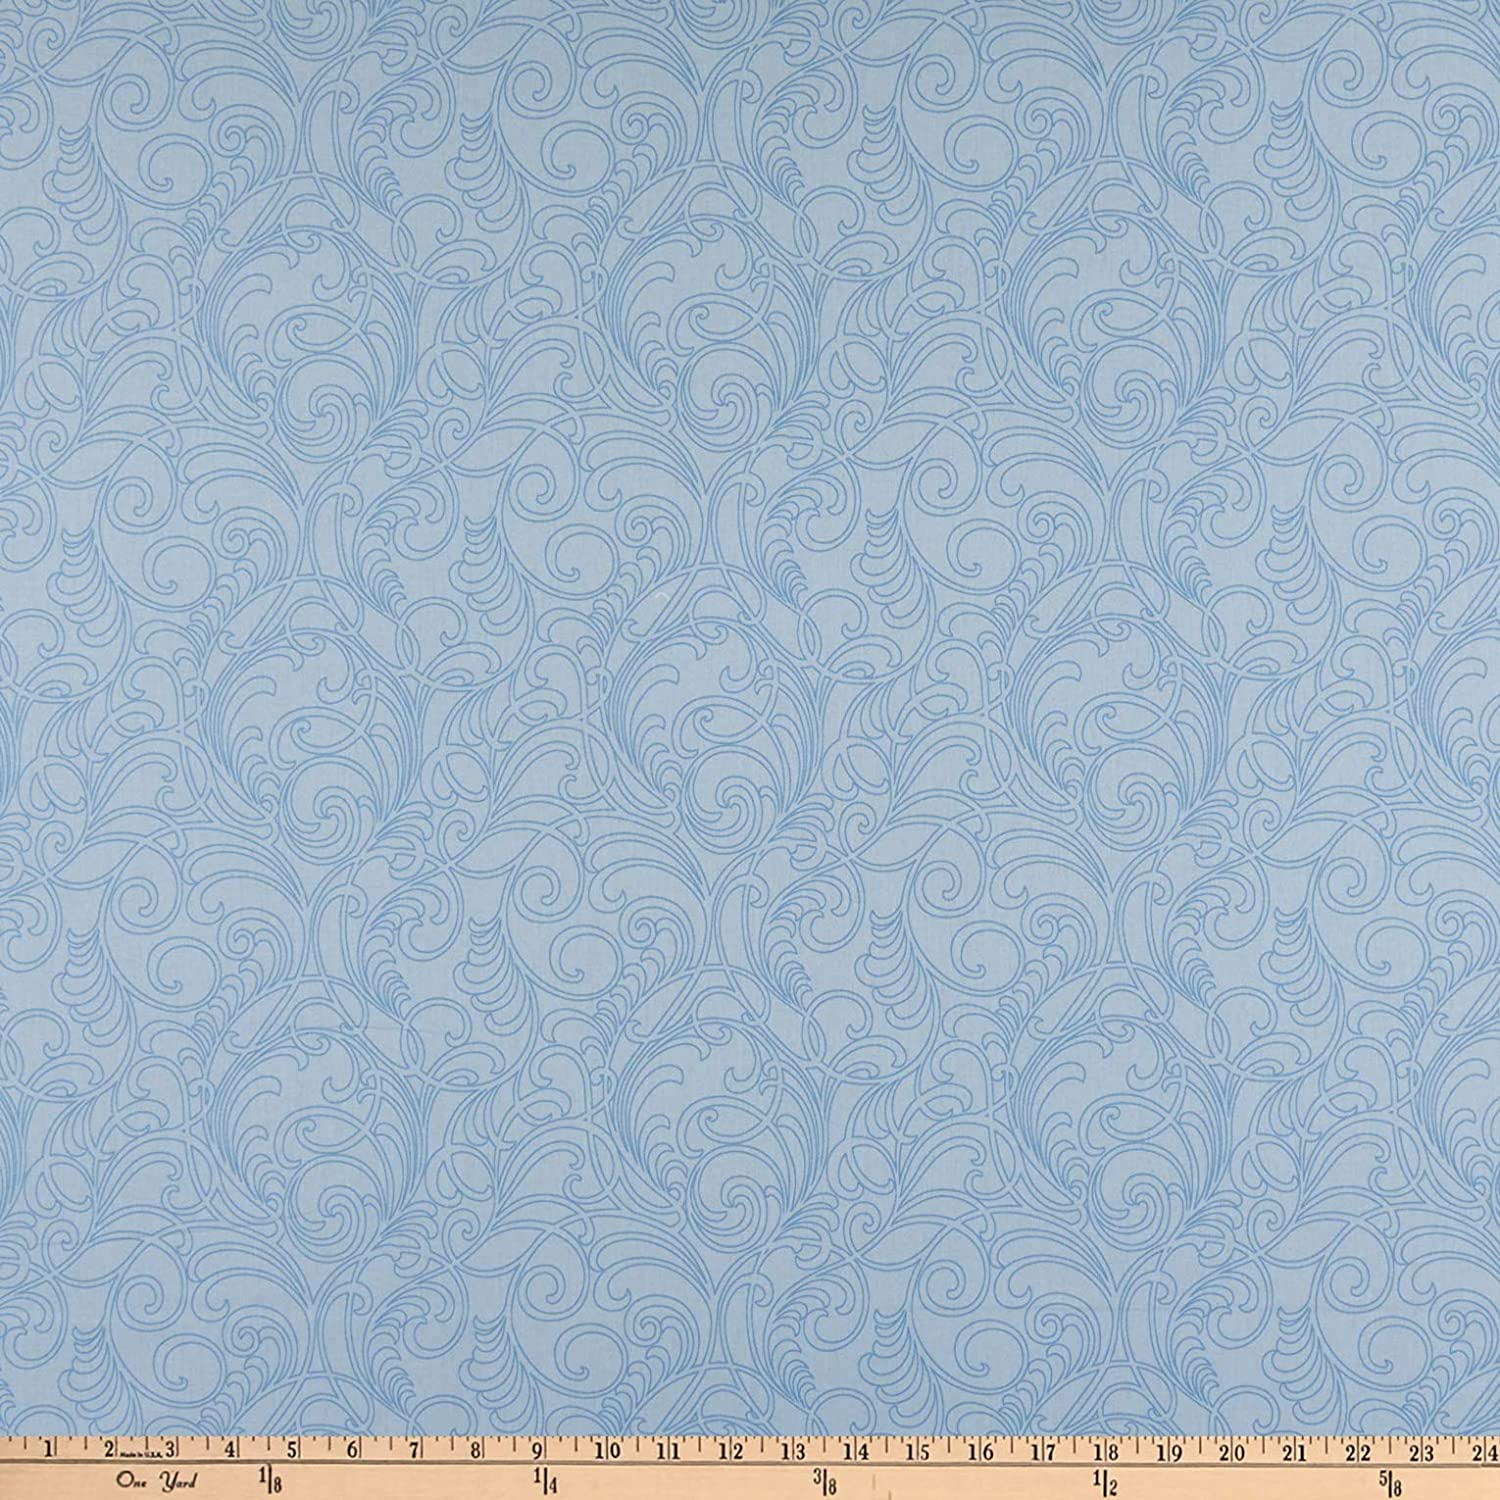 Benartex Classic Scrolls And Blenders Meadow Scroll Light Blue Quilt Fabric By The Yard